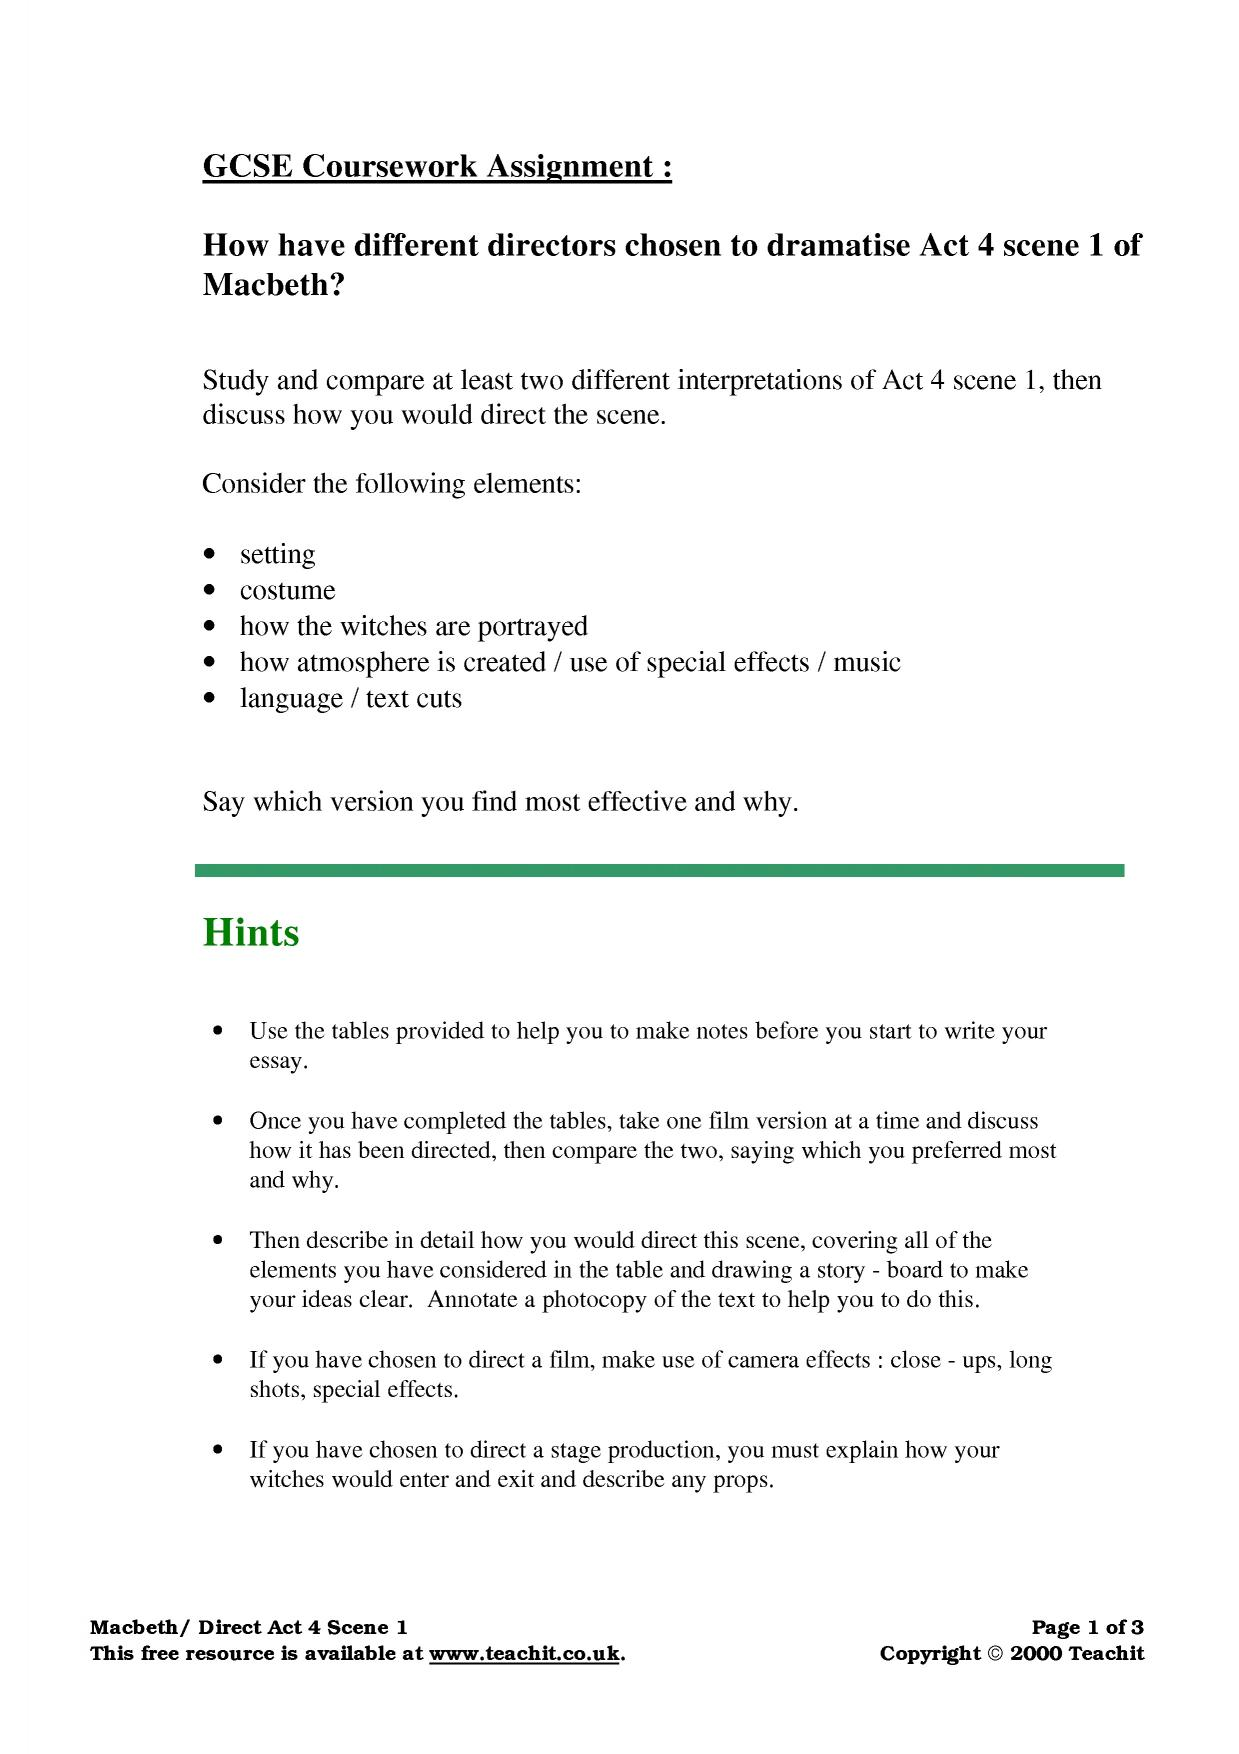 macbeth act 4 essay Essay sample on macbeth – act 4 scene 1: topics specifically for you order now at the time this play was written people really believed in witches they would have run away, however.